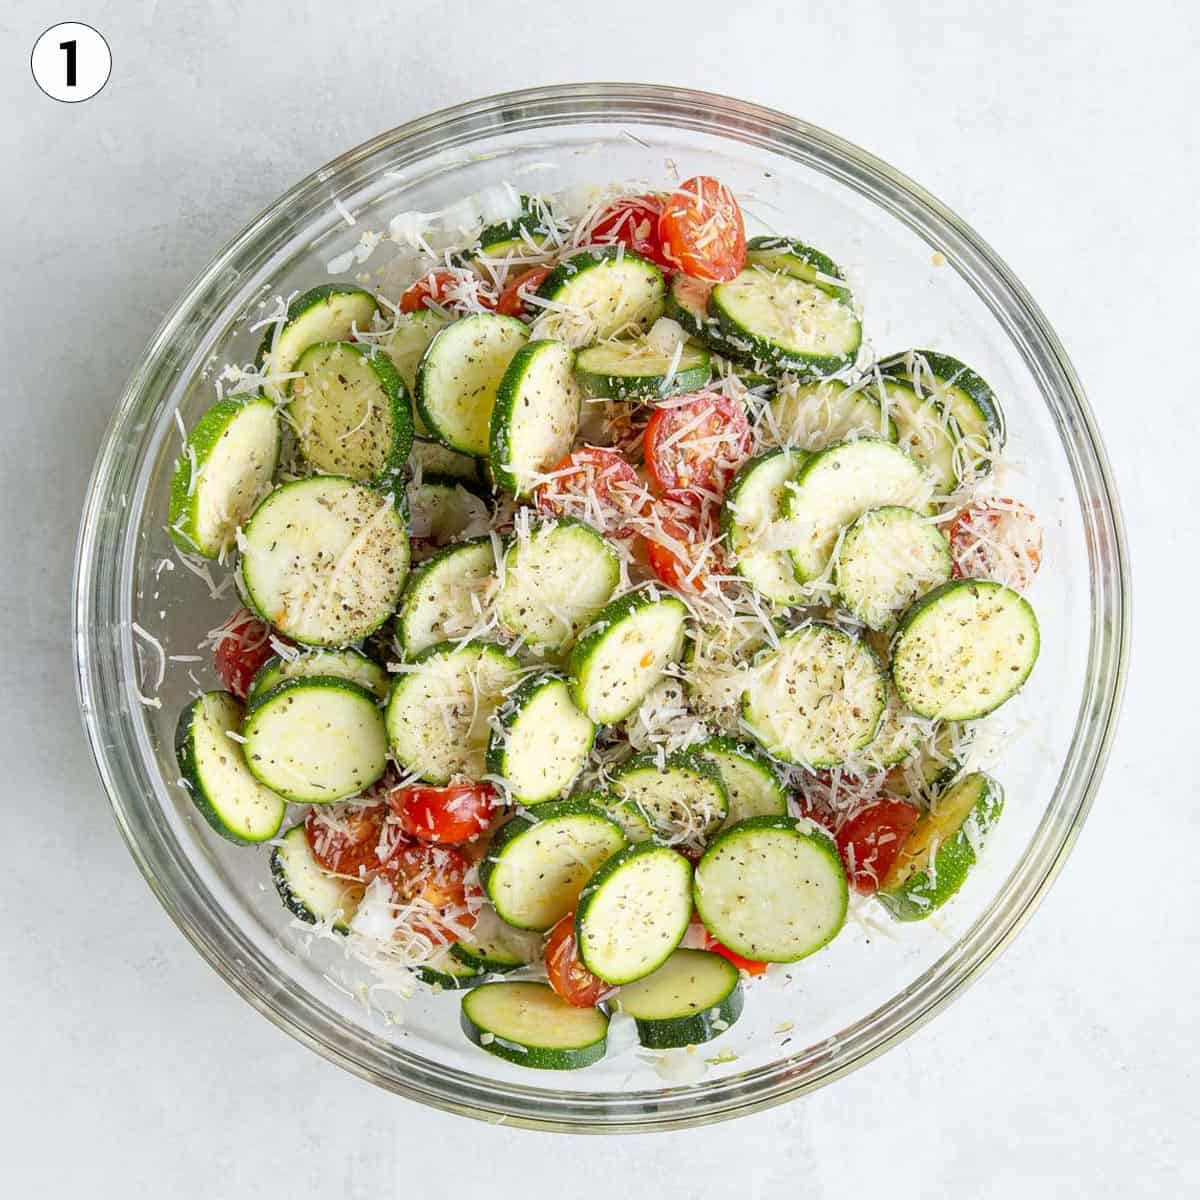 Sliced zucchini, tomatoes, onions, cheese and seasonings in a glass bowl.